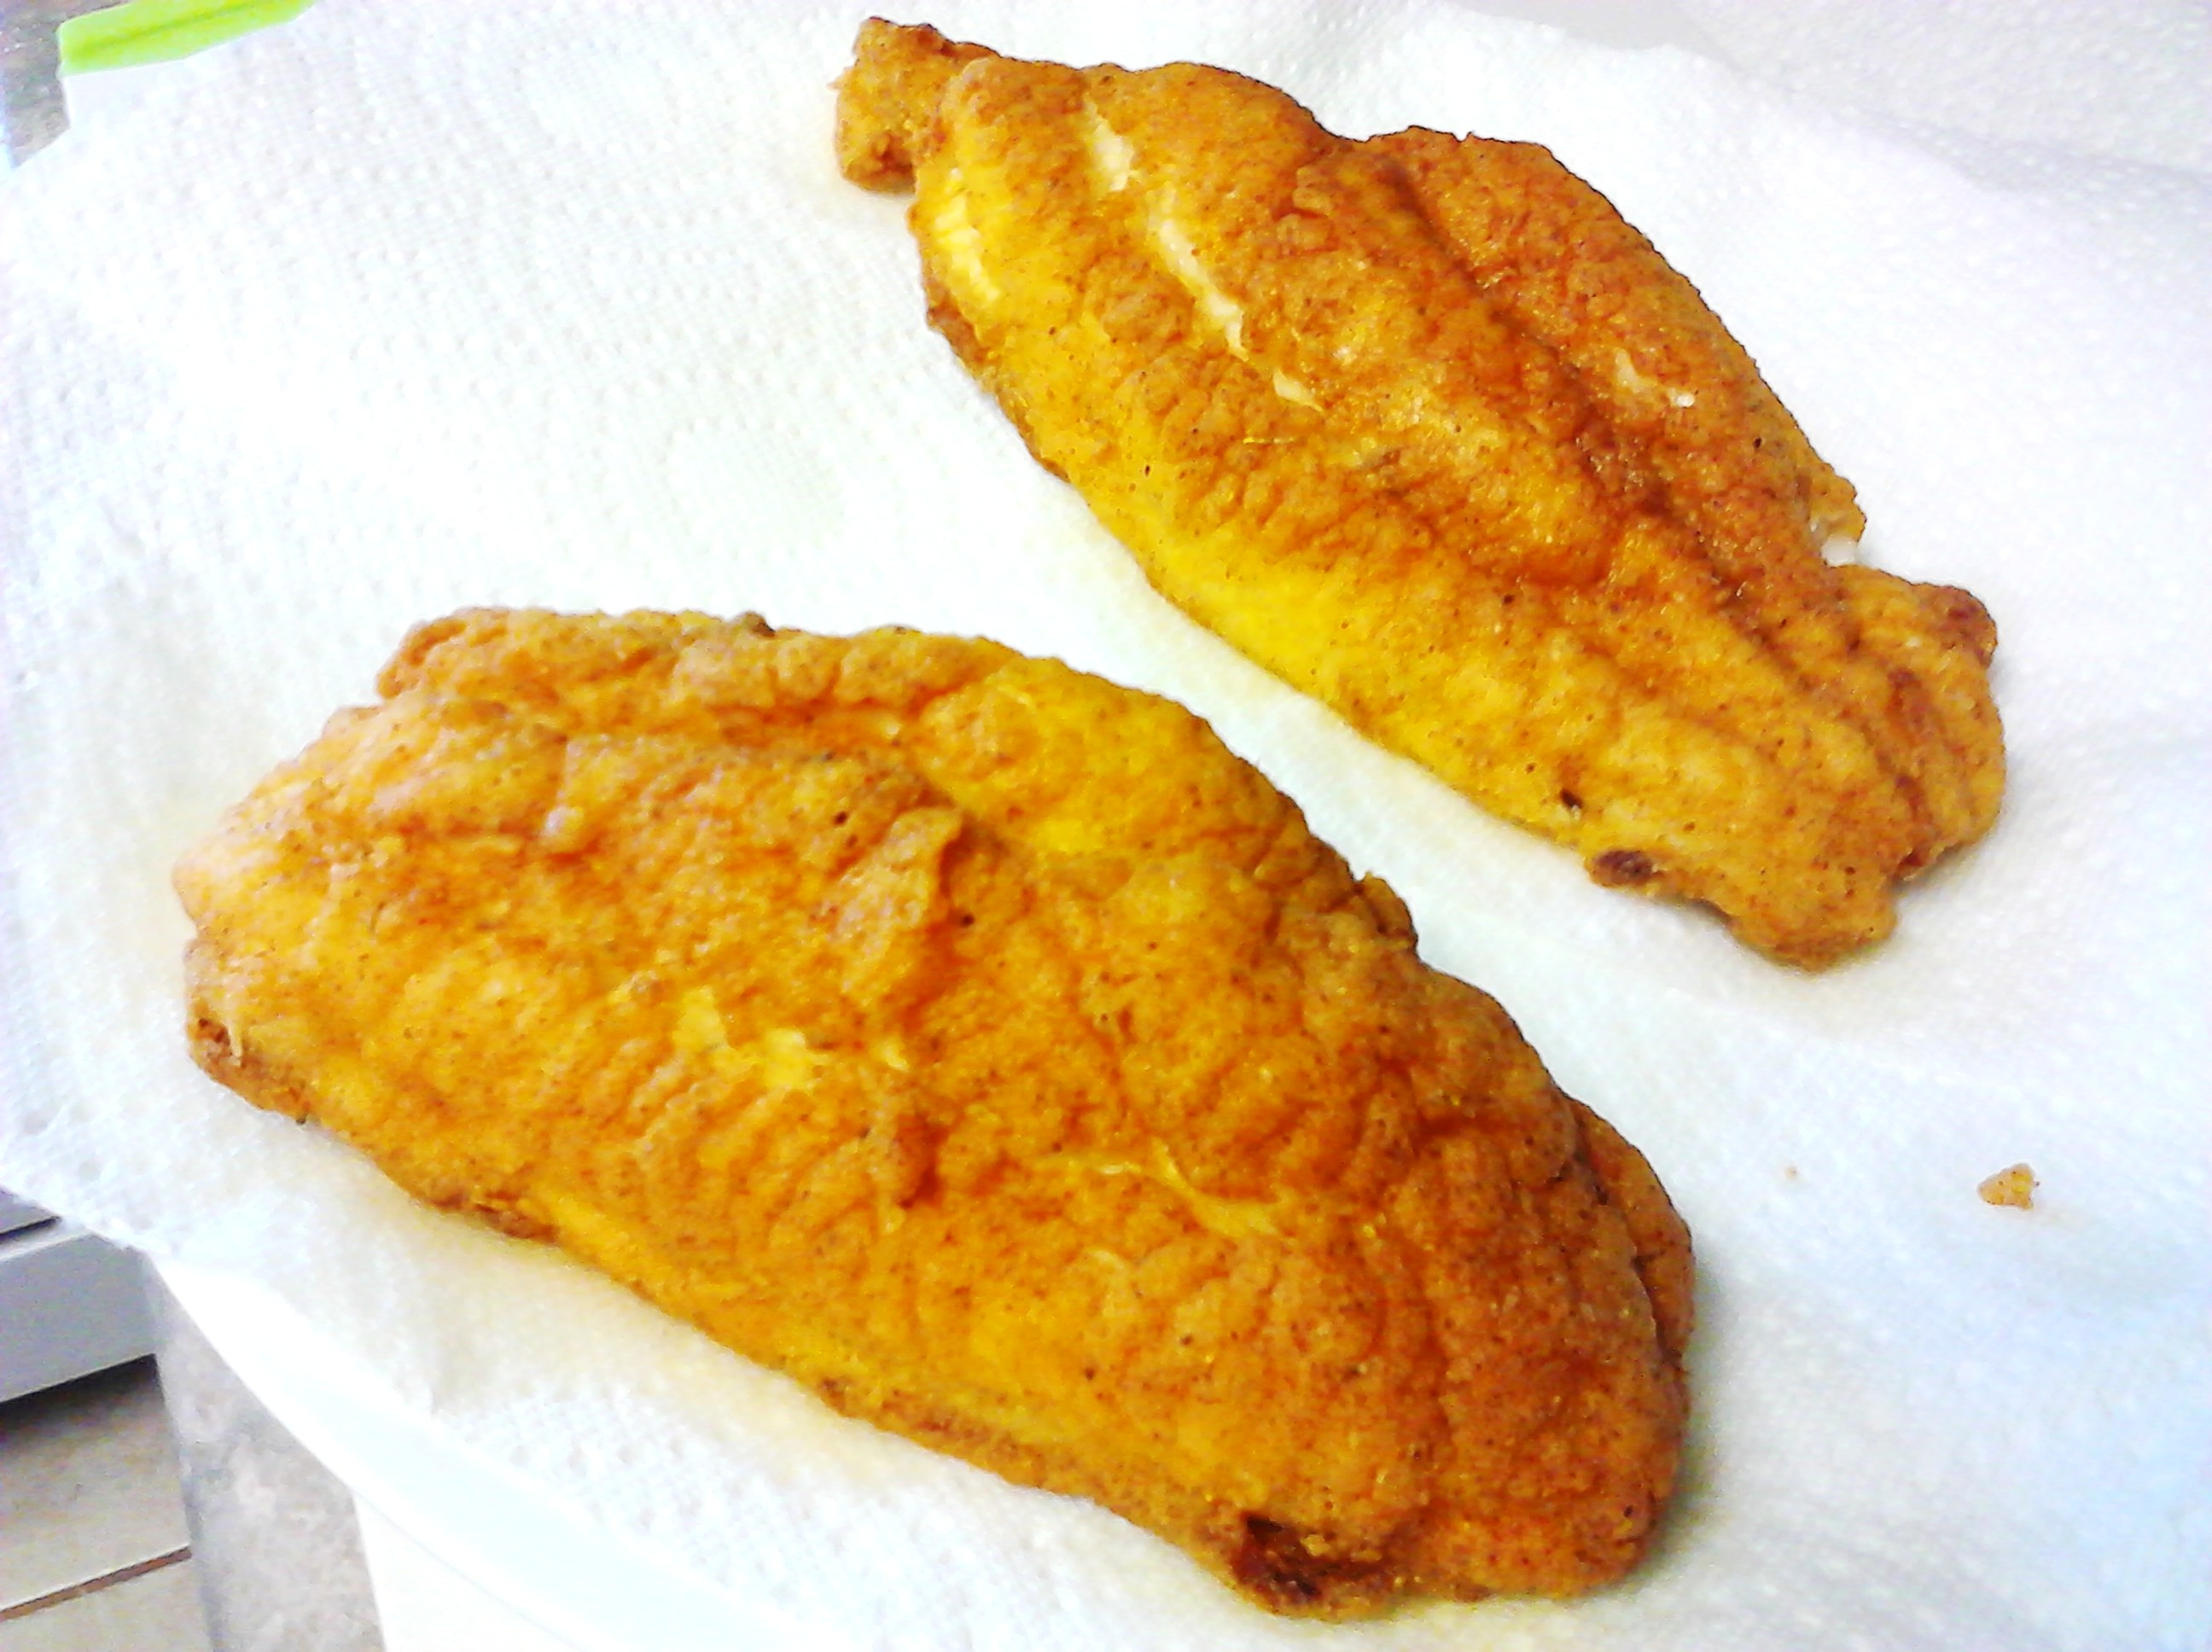 Frying fish from a box poor man 39 s gourmet kitchen for What goes good with fried fish